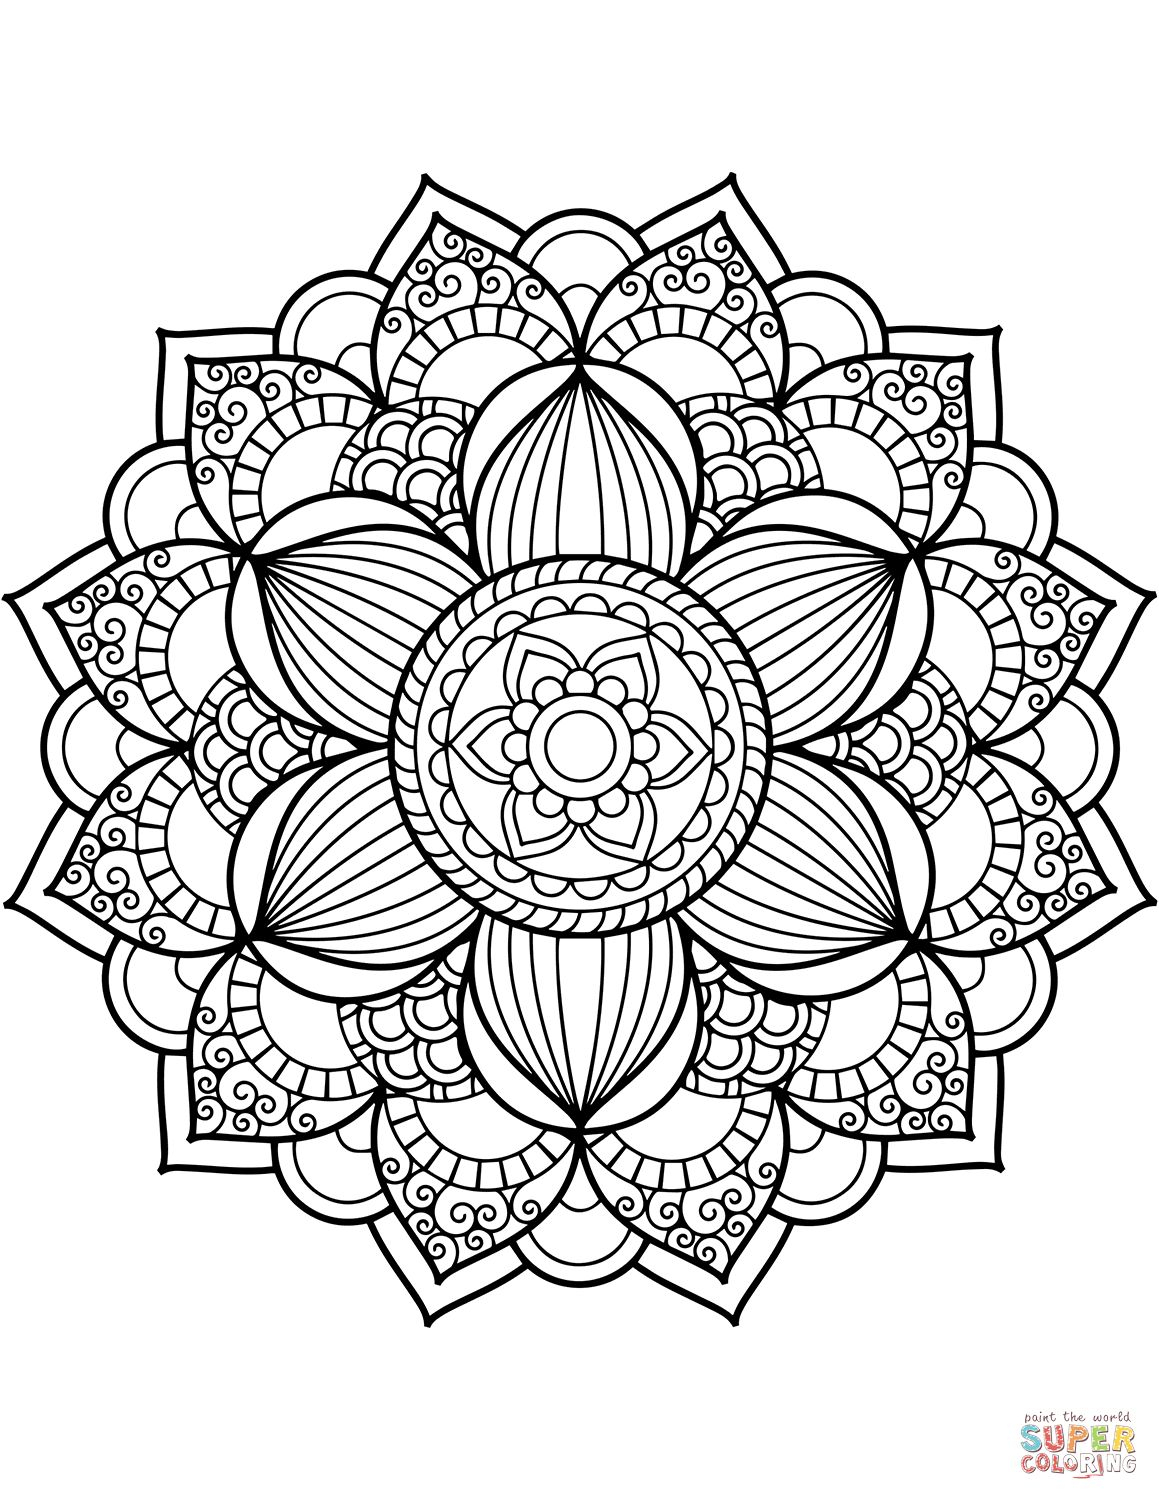 Free Mandala Coloring Pages To Print Printable Adults Colouring - Mandala Coloring Free Printable